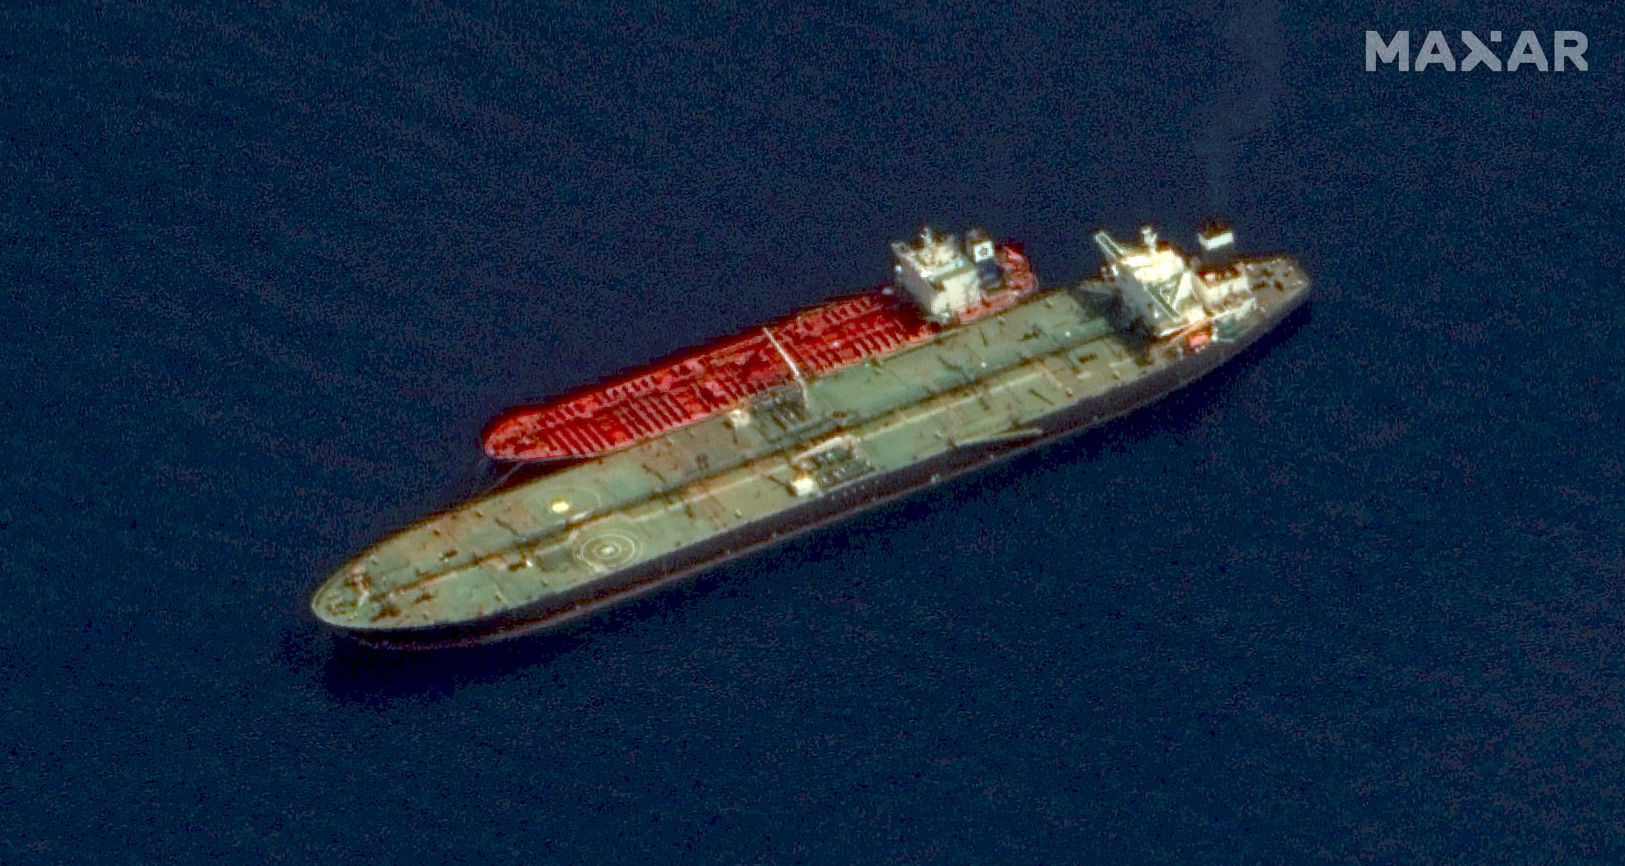 Two Iranian-flagged tankers, the Adrian Darya 1 and the Jasmine, is shown in this satellite image handout released on October 3, 2019 by Maxar Technologies